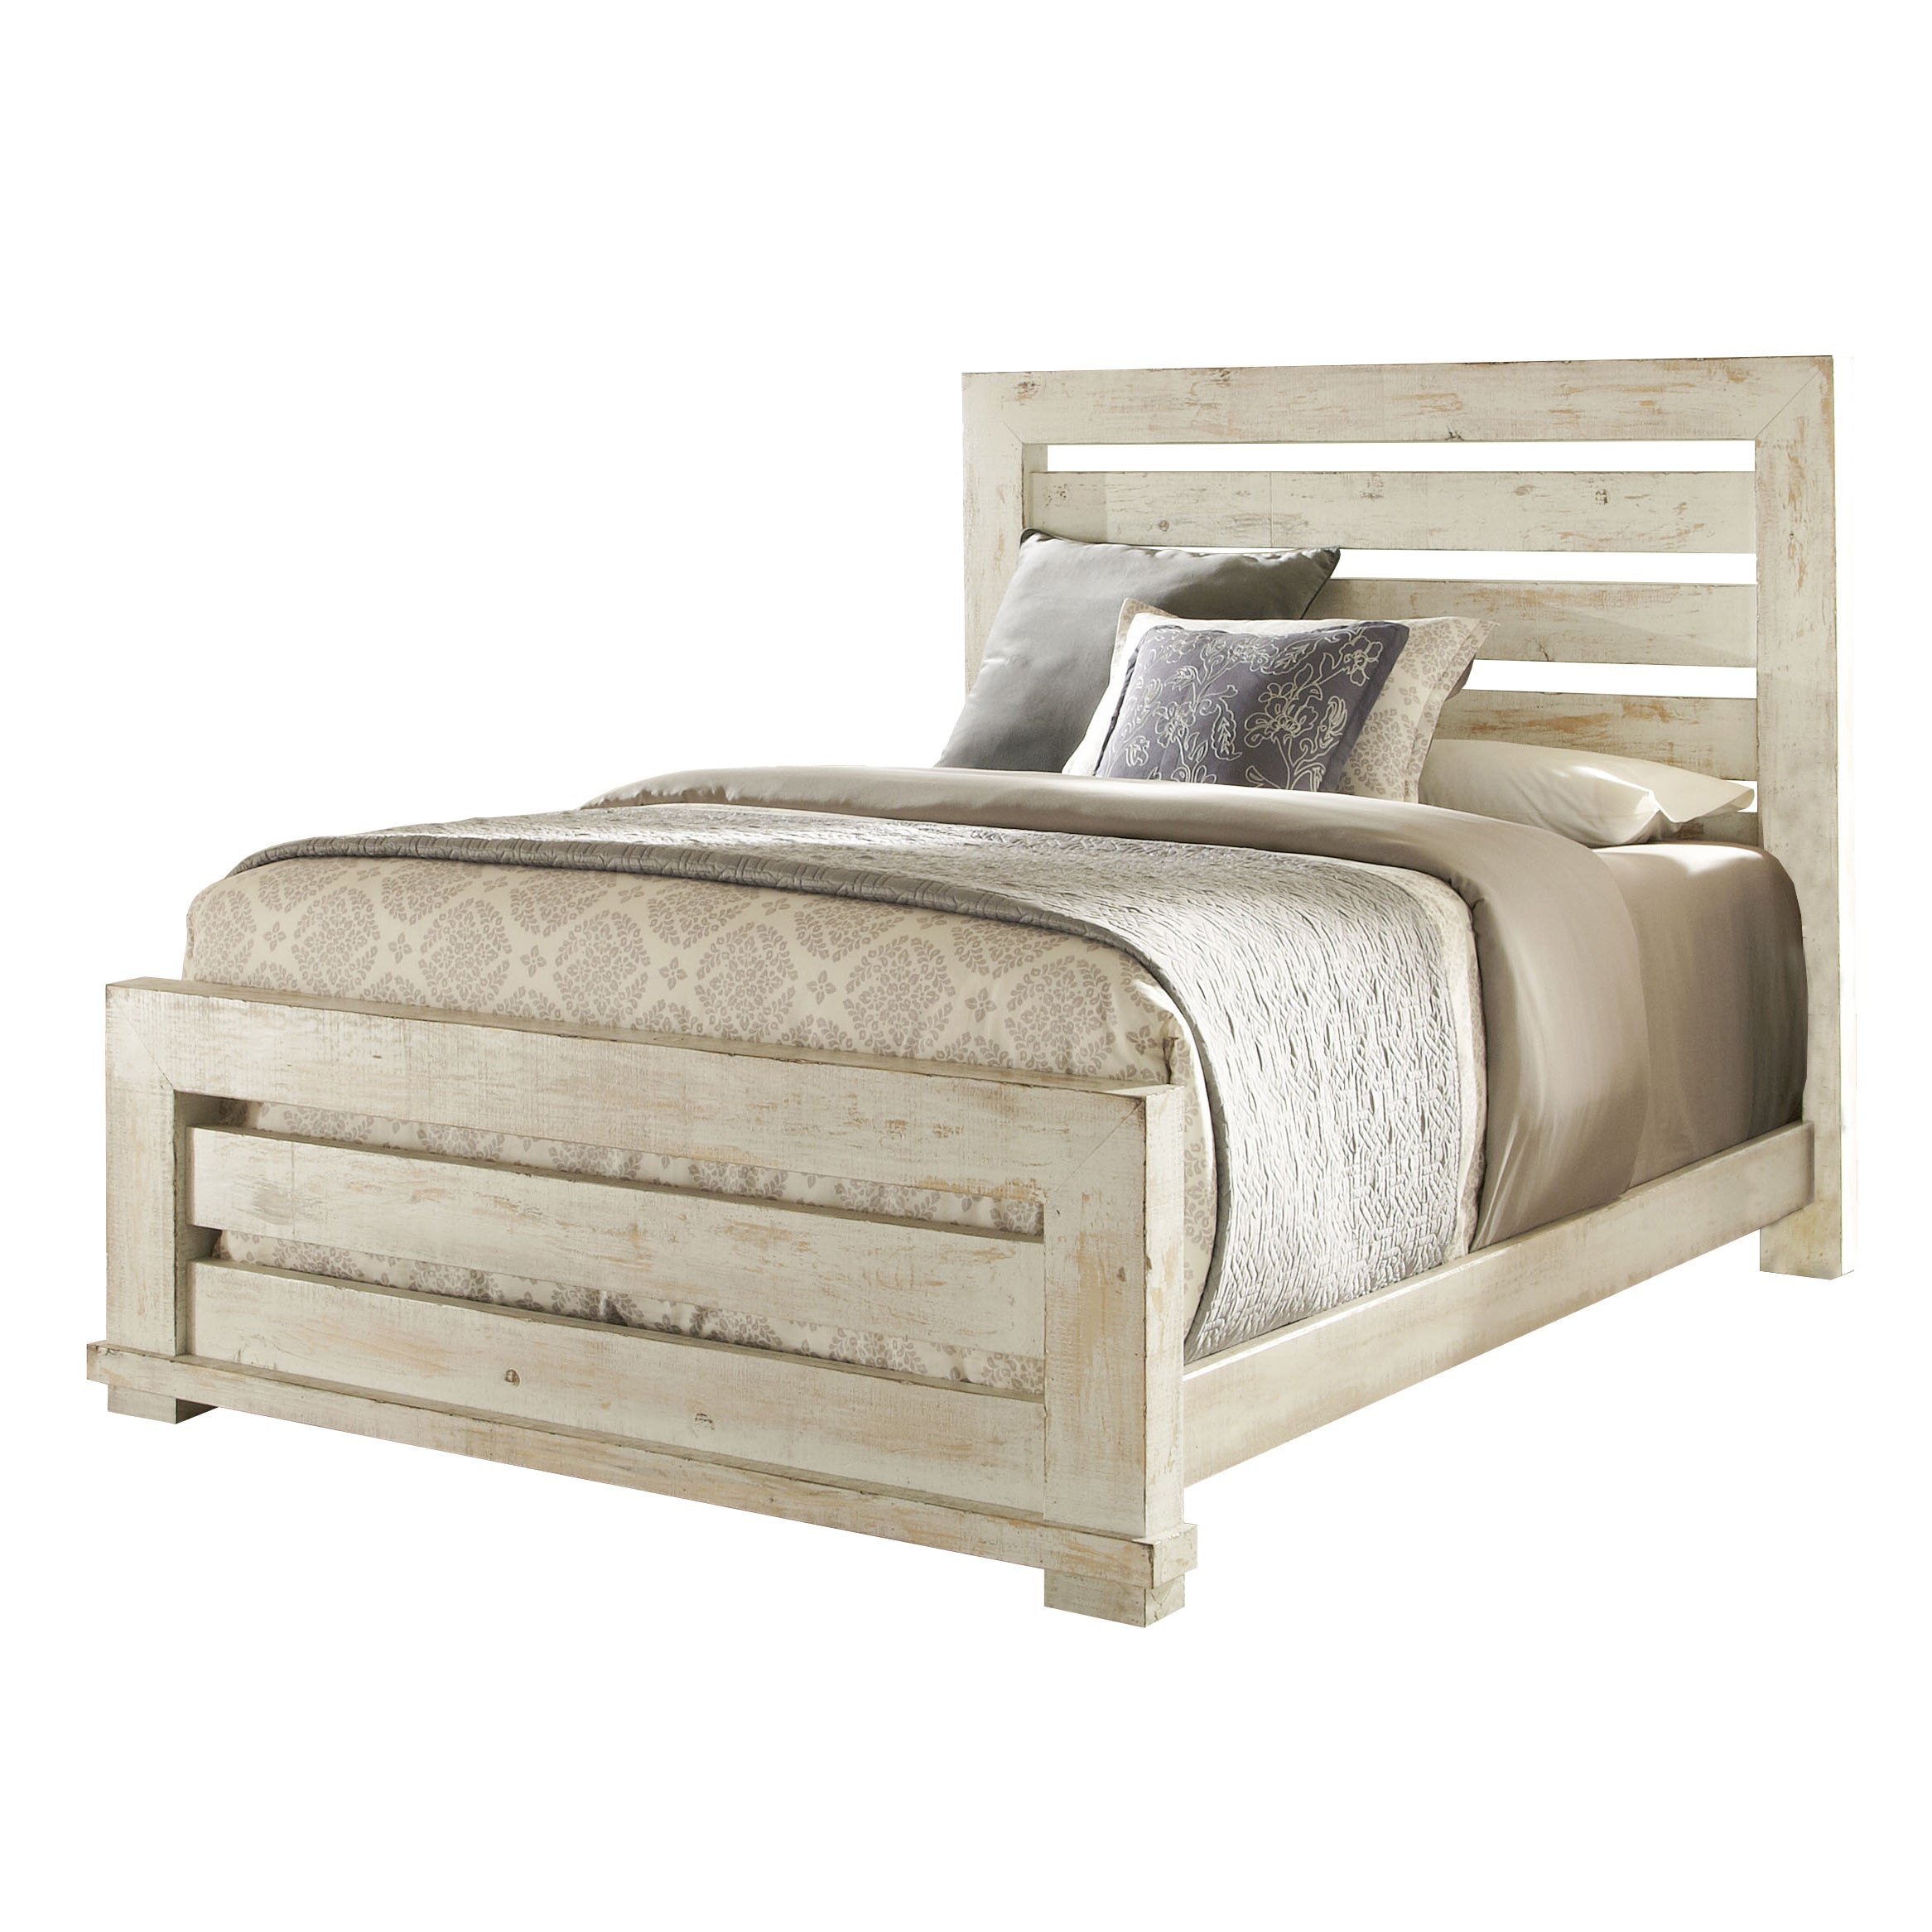 Willow Pine Distressed Slat Bed - Free Shipping Today - Overstock ...